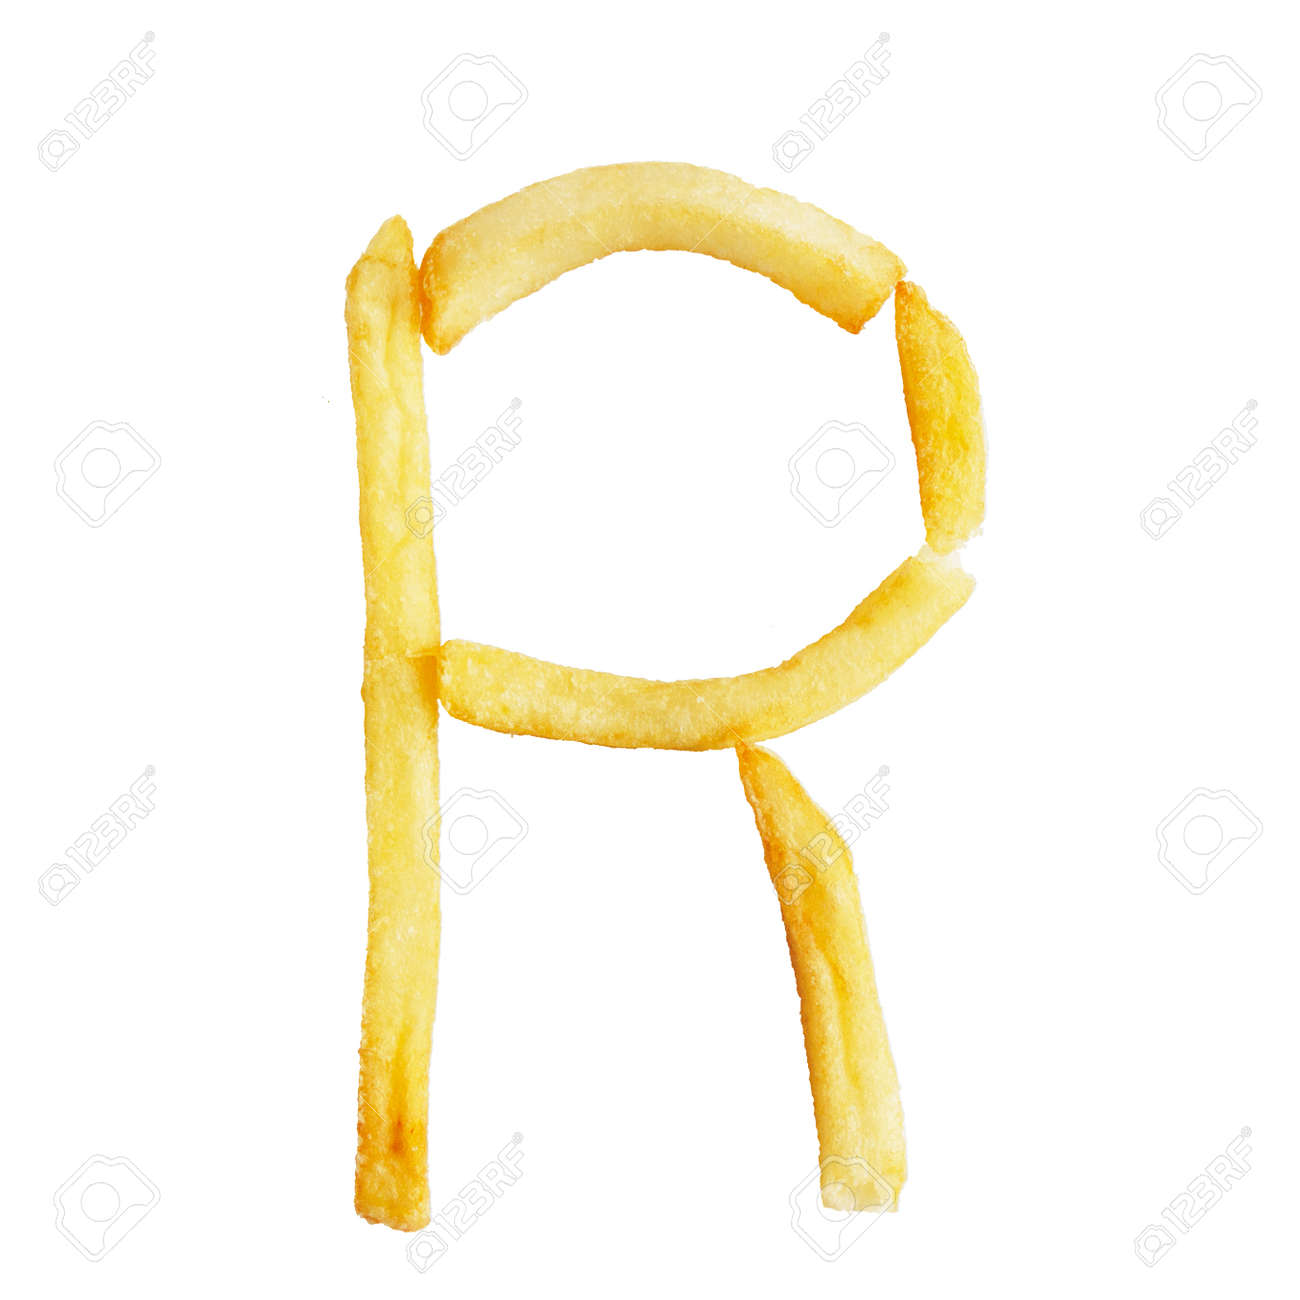 letter r symbol is made of the same fries alphabet of french